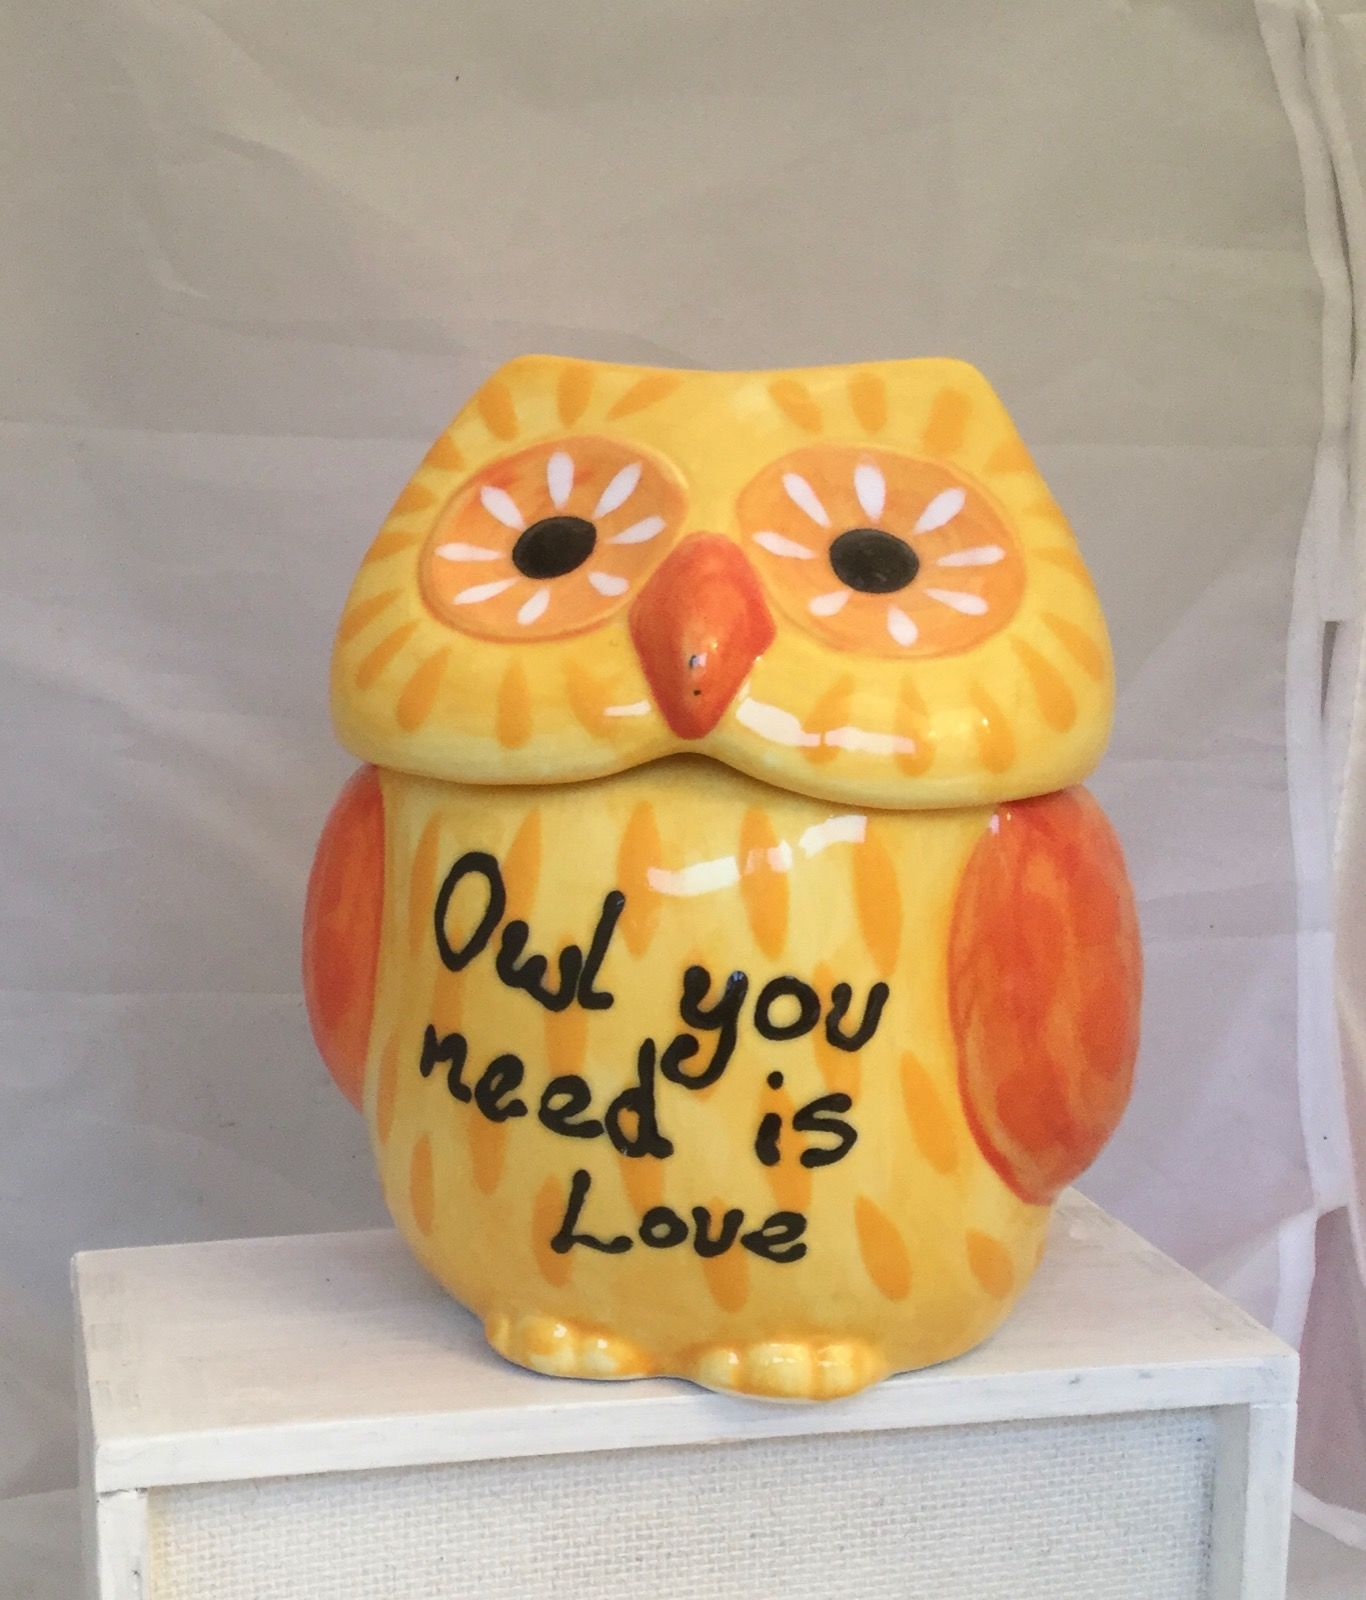 Owl You Need is Love!